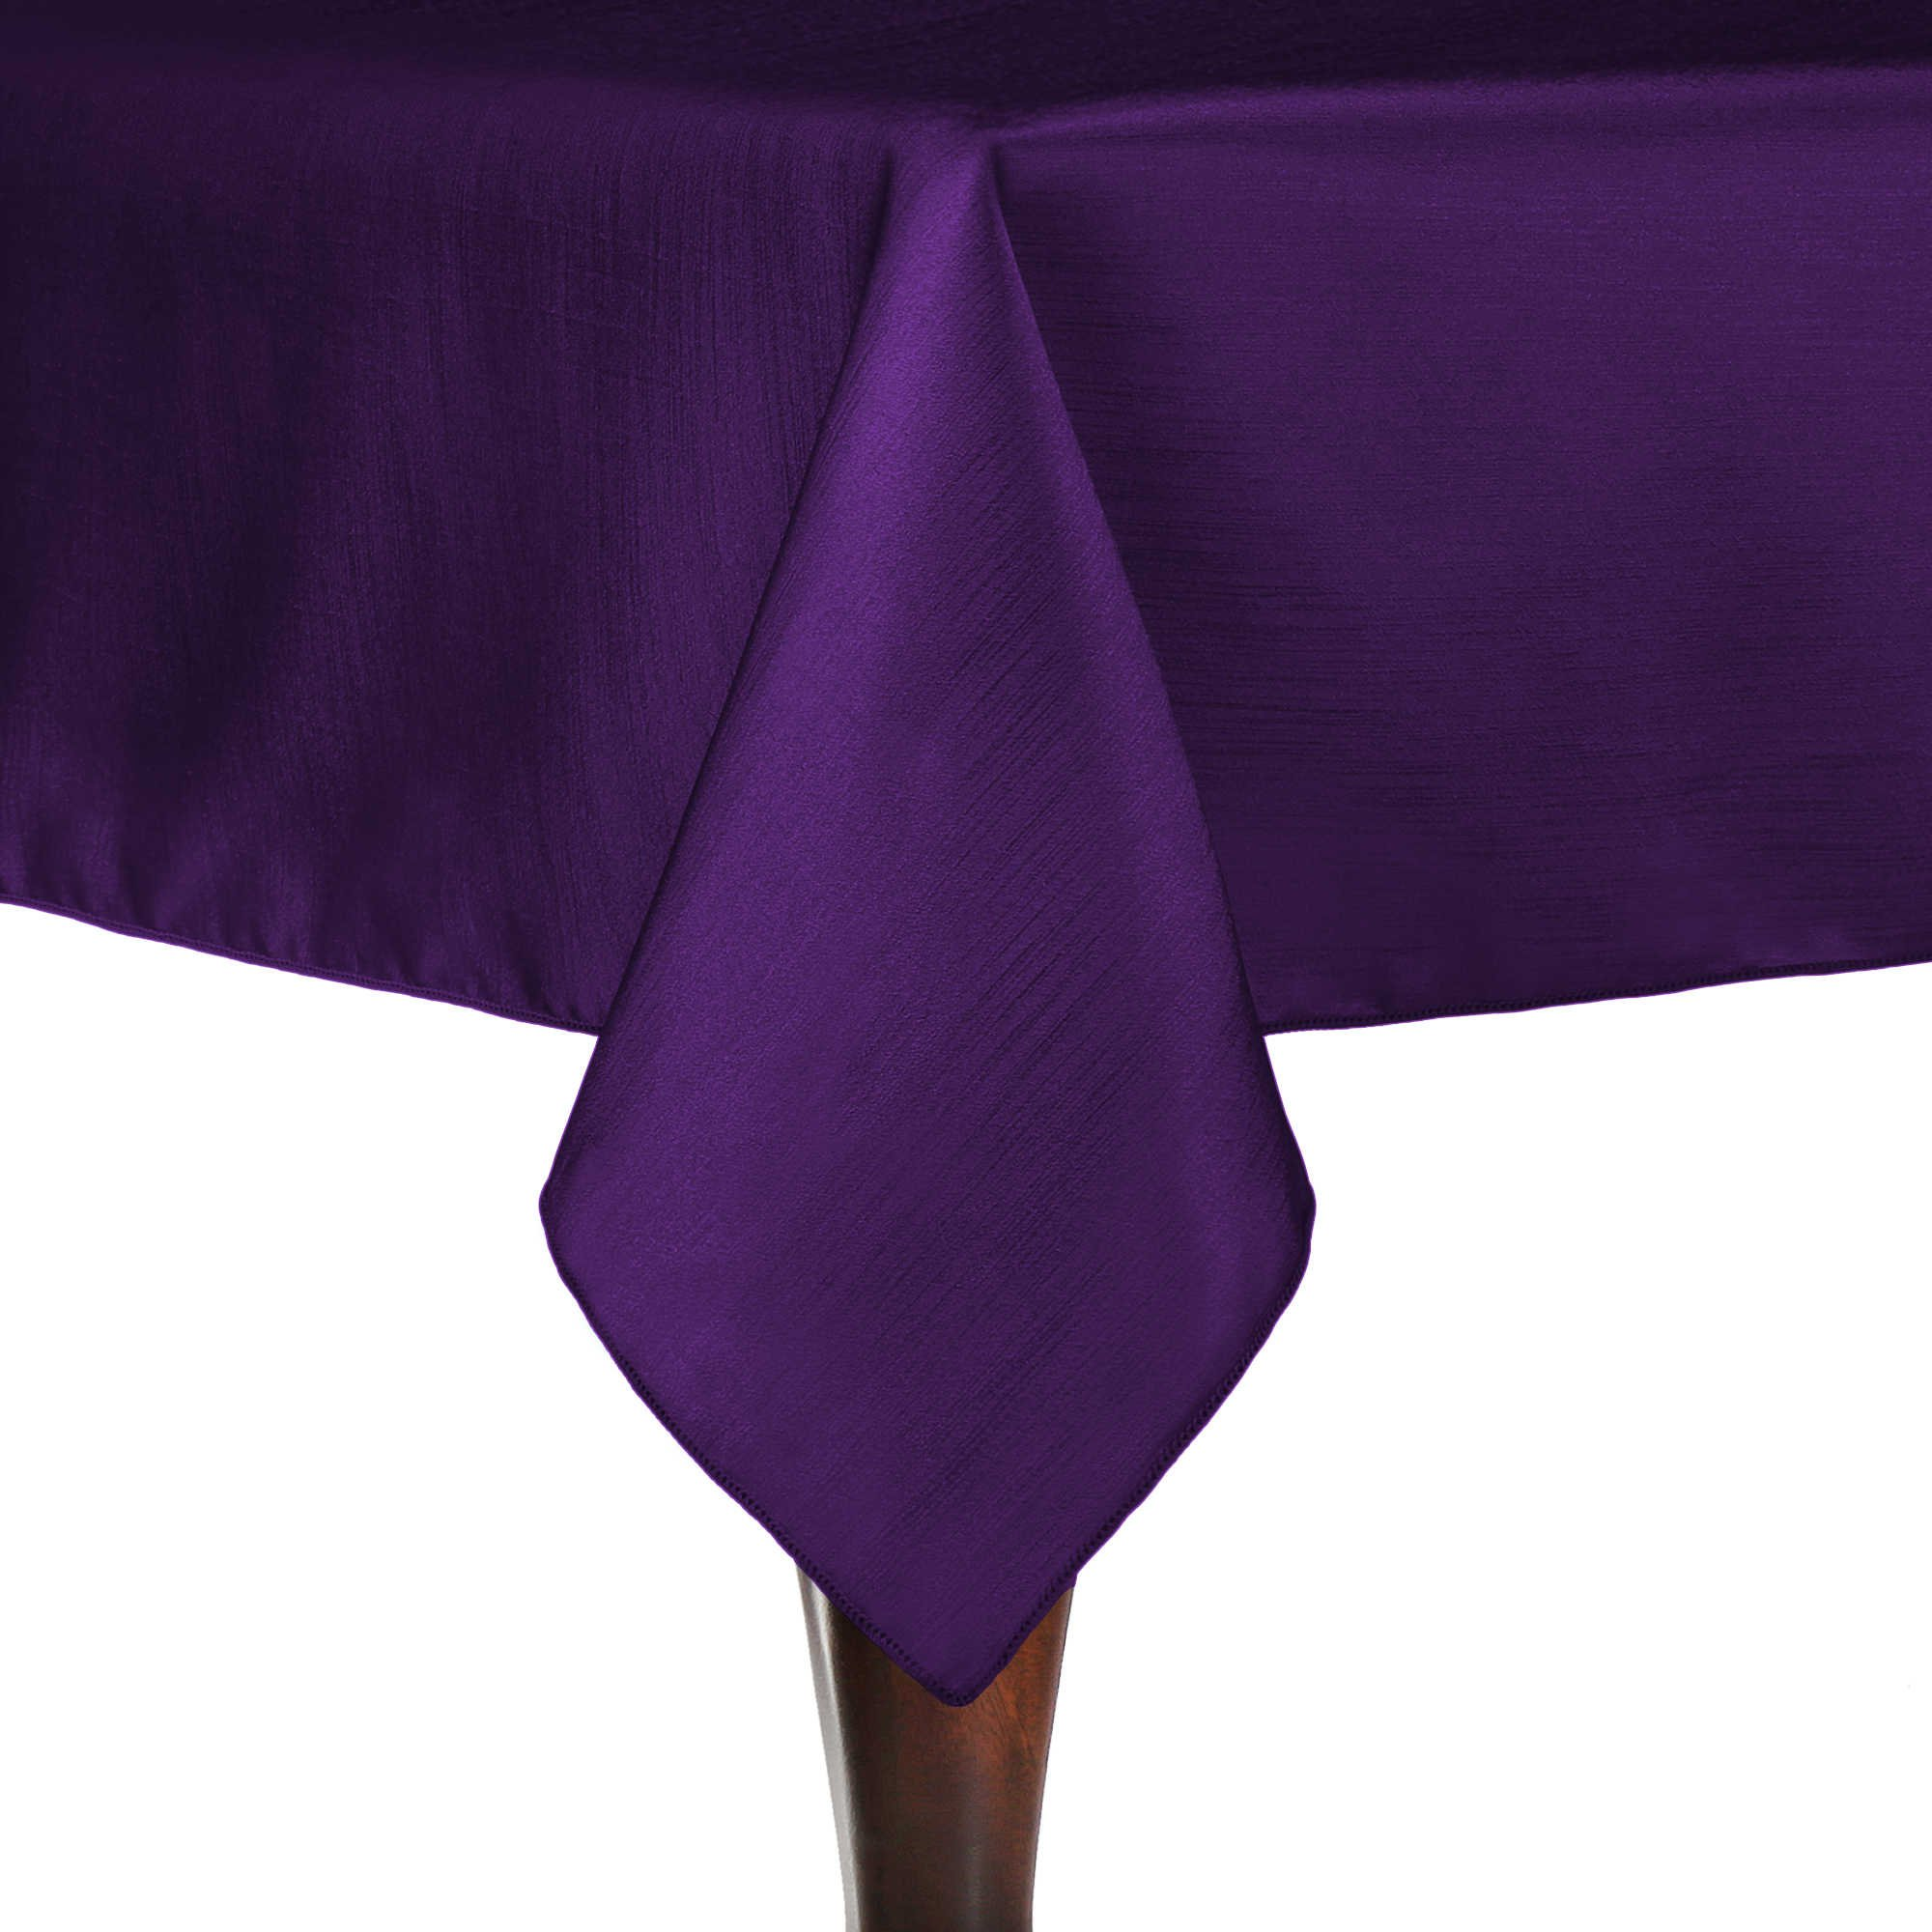 Ultimate Textile (10 Pack) Reversible Shantung Satin - Majestic 60 x 120-Inch Rectangular Tablecloth - for Weddings, Home Parties and Special Event use, Purple by Ultimate Textile